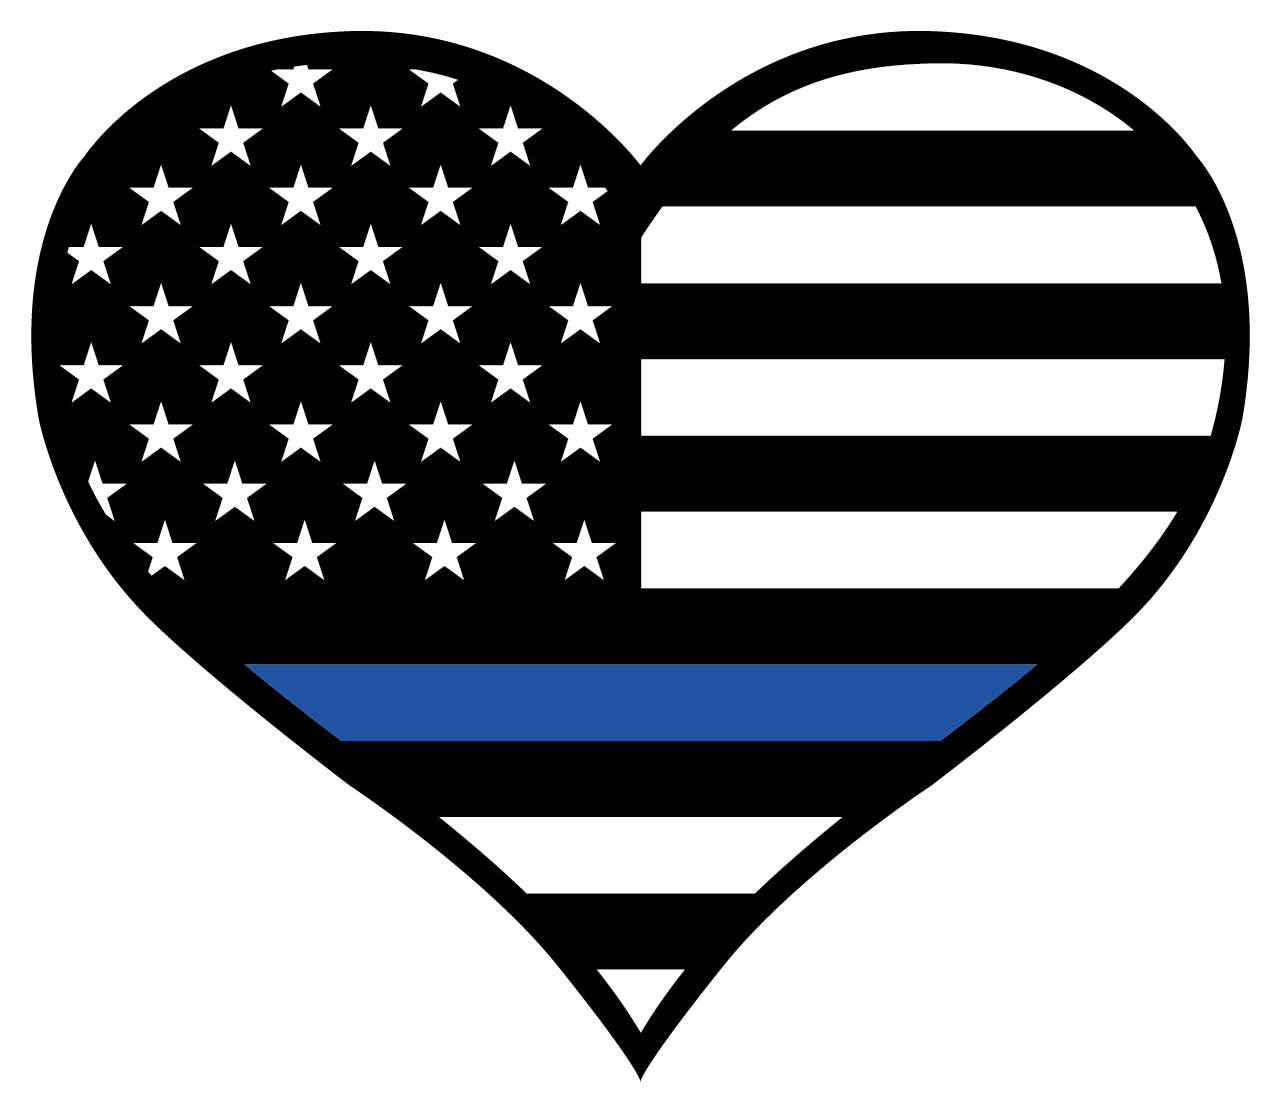 Thin blue line cross clipart png library download Thin Blue Line Heart Sticker | Pinterest | Symbols, Free shipping ... png library download